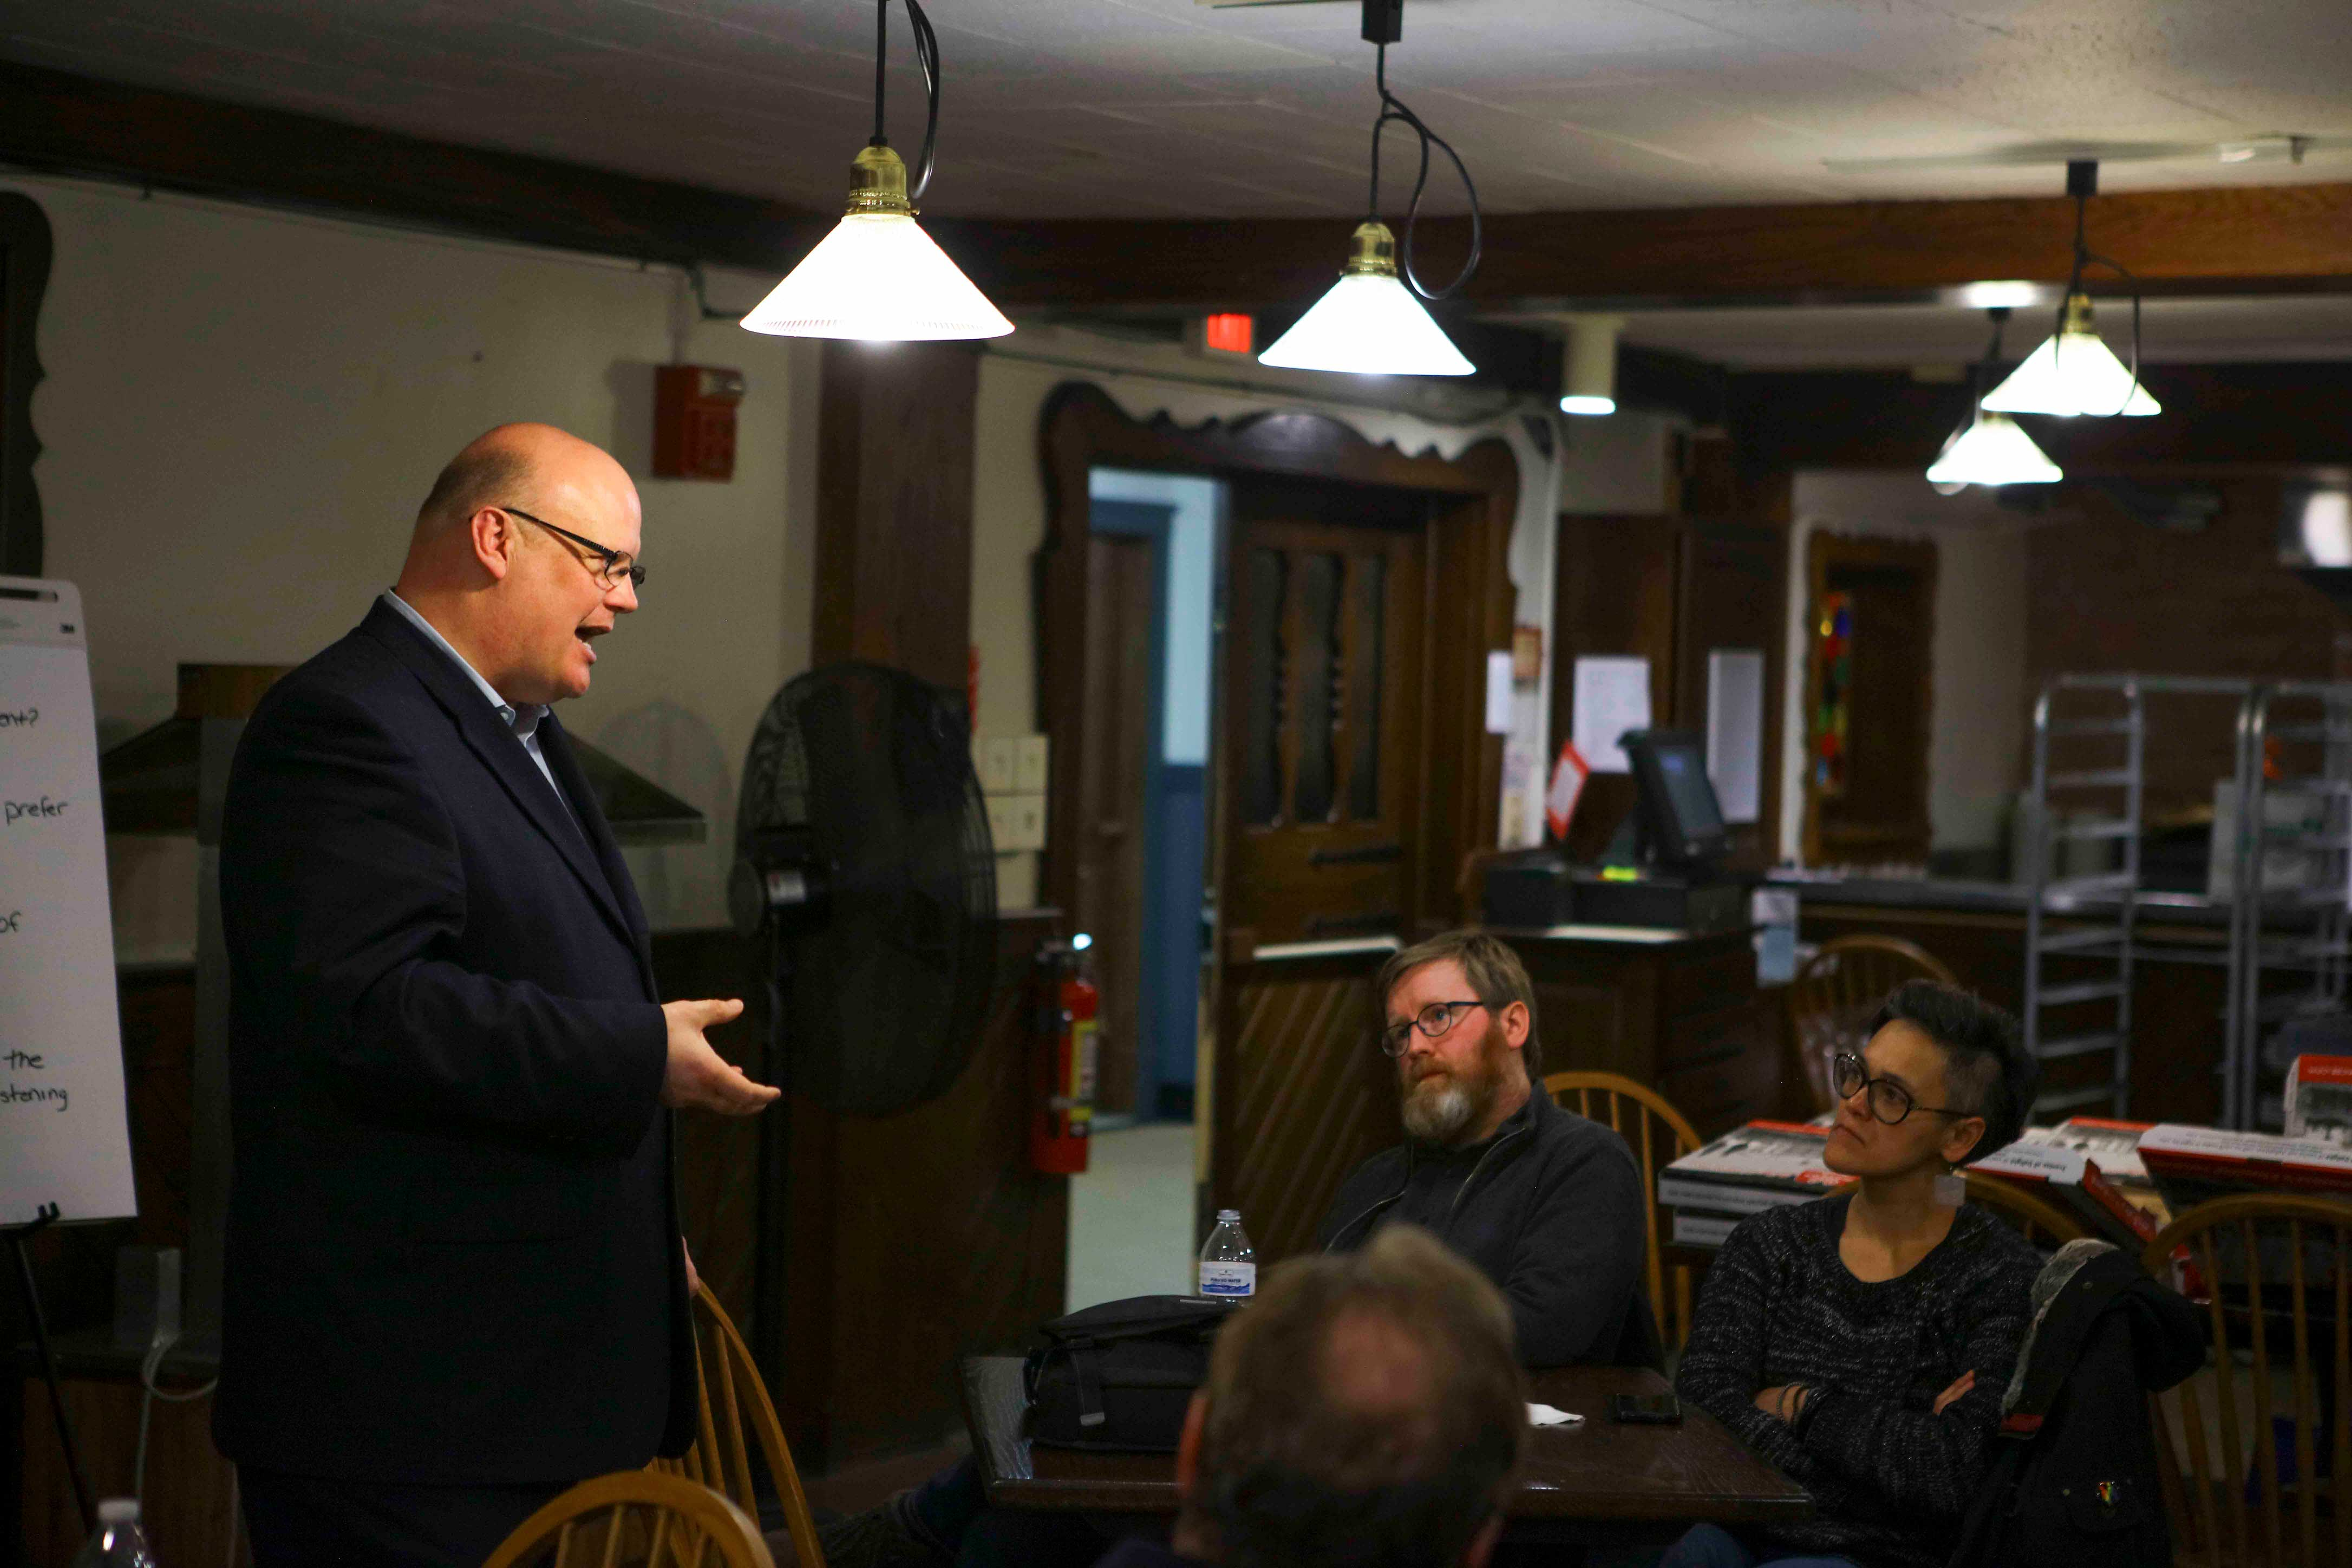 City Manager Rob Hillard holds a listening session with community members and students at the Rathskeller Monday evening as the search for the new police chief continues. The attendees emphasized that the new chief should prioritize residents' well-being.